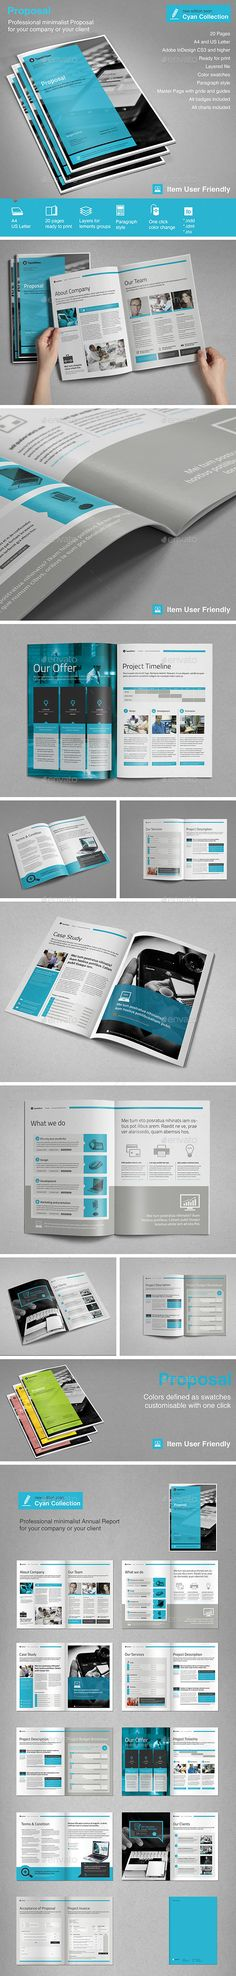 Full Project Proposal Template Project proposal, Proposal - product sales proposal template